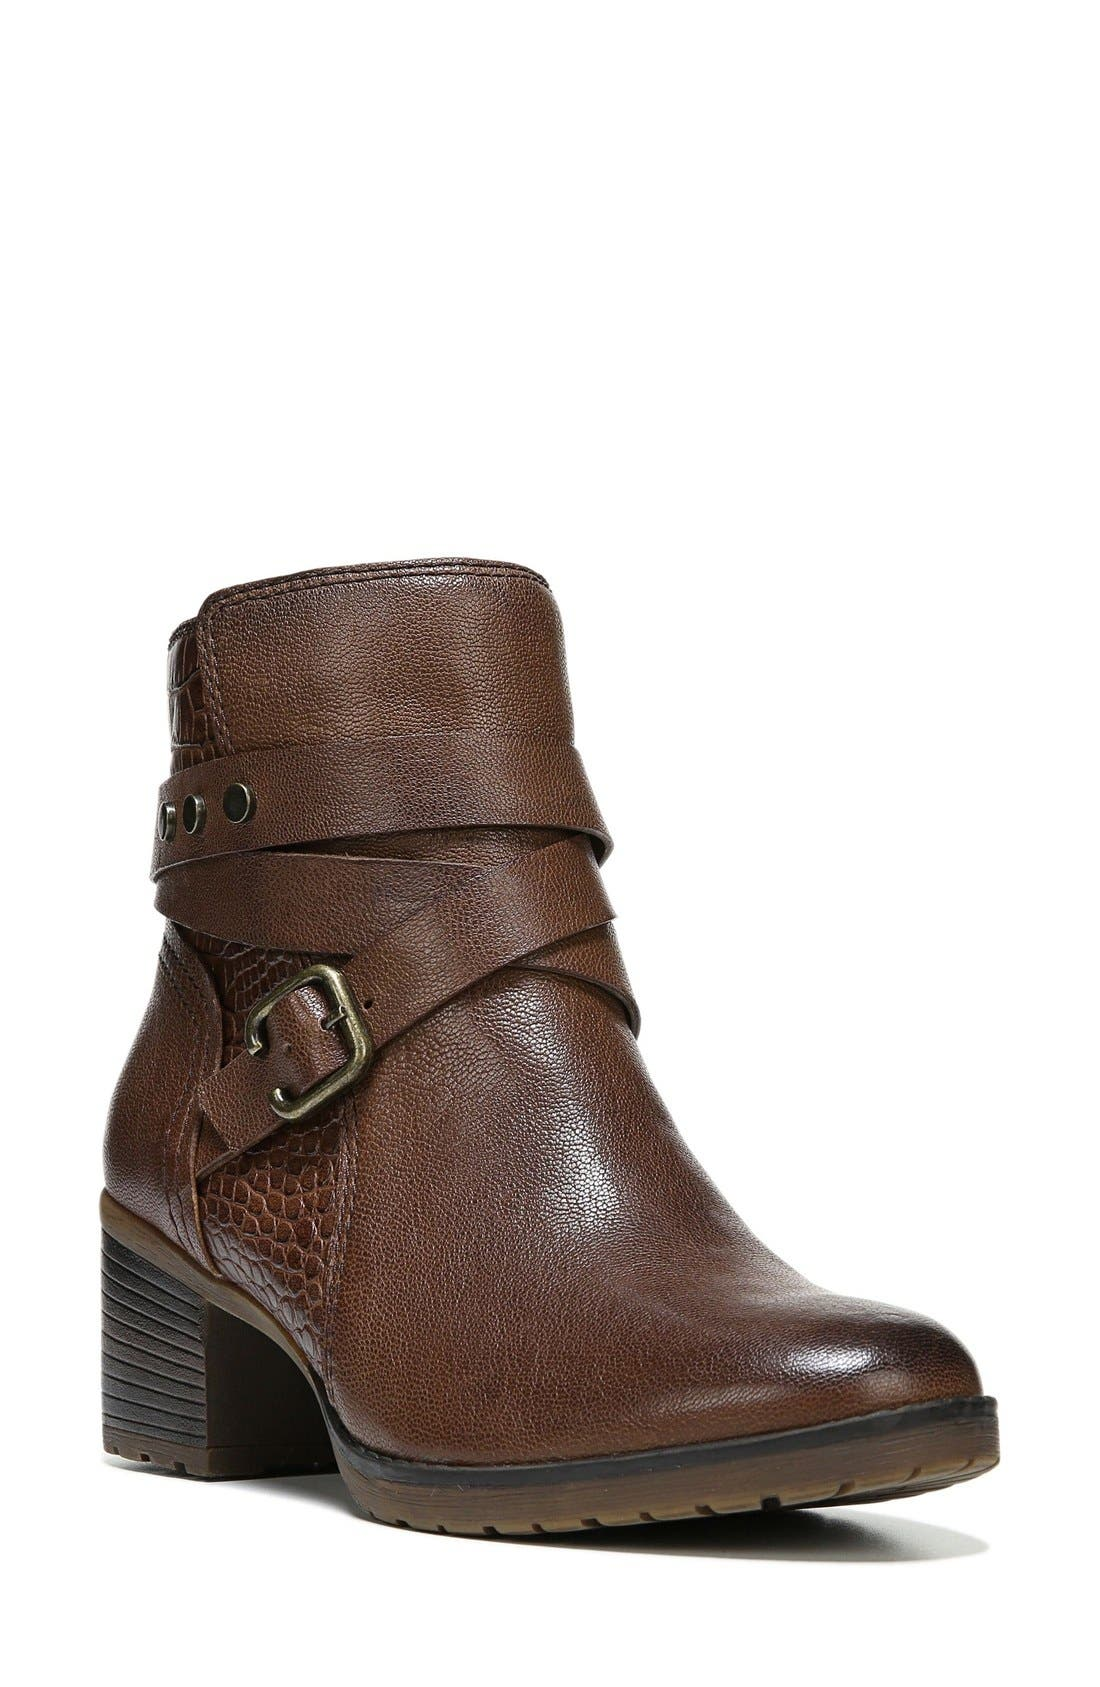 'Ringer' Boot,                         Main,                         color, Tan Leather